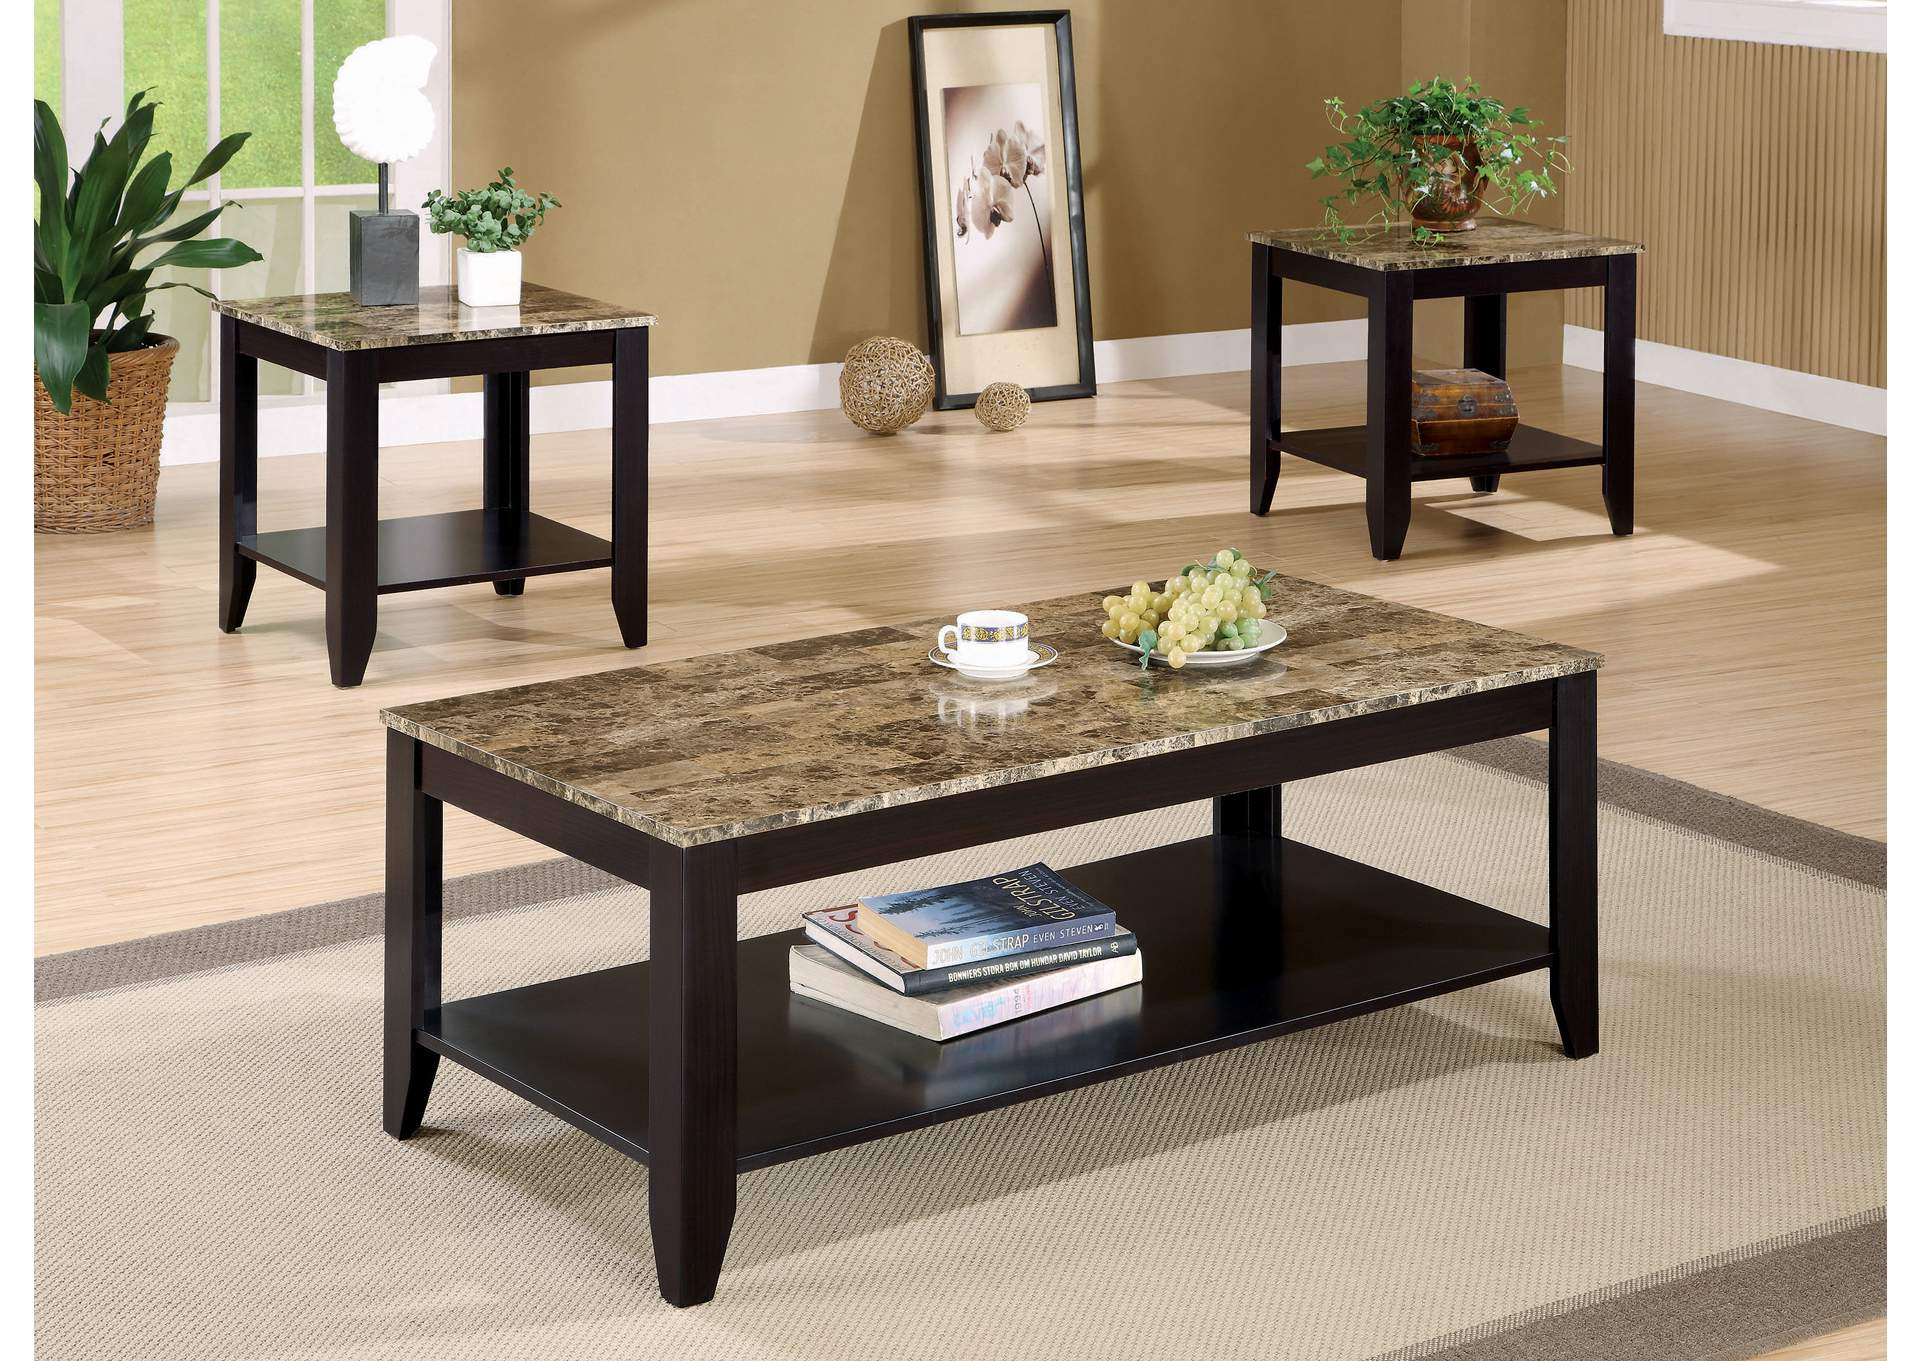 Walnut Transitional Marble Look Top Three-Piece Table Set,Coaster Furniture